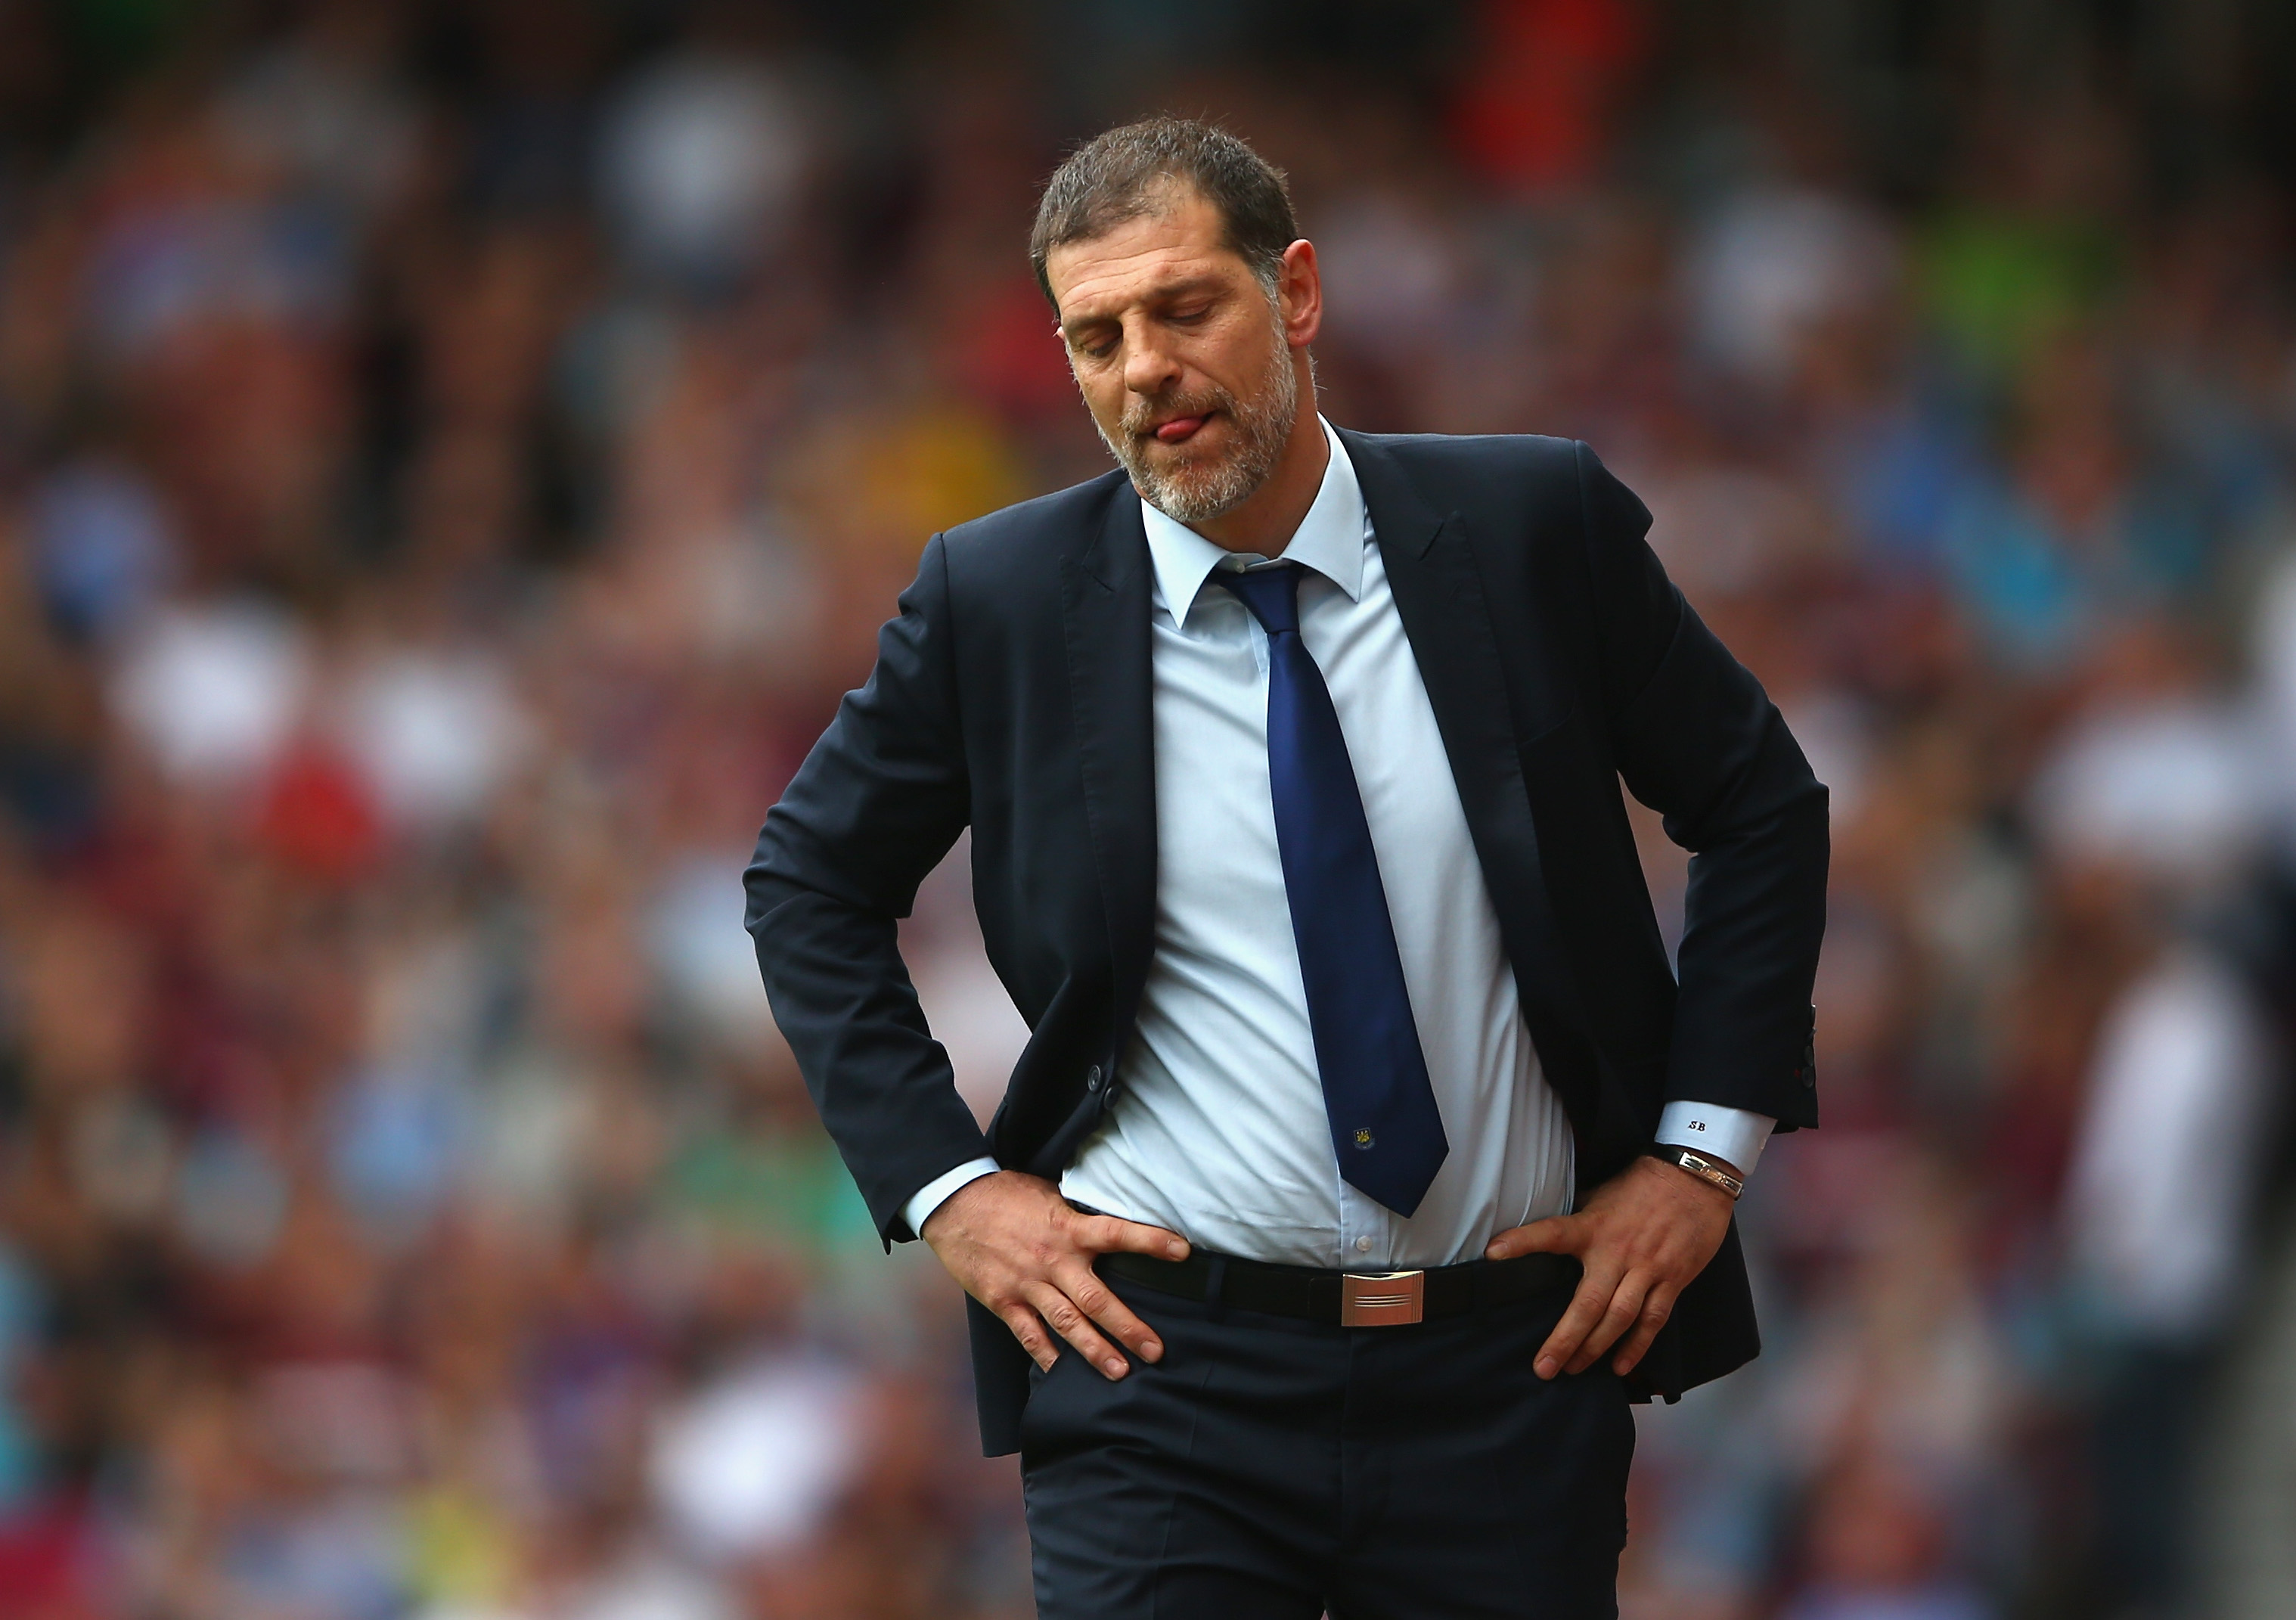 LONDON, ENGLAND - MAY 07: Manager Slaven Bilic of West Ham United reacts during the Barclays Premier League match between West Ham United and Swansea City at the Boleyn Ground, May 7, 2016, London, England. (Photo by Paul Gilham/Getty Images)